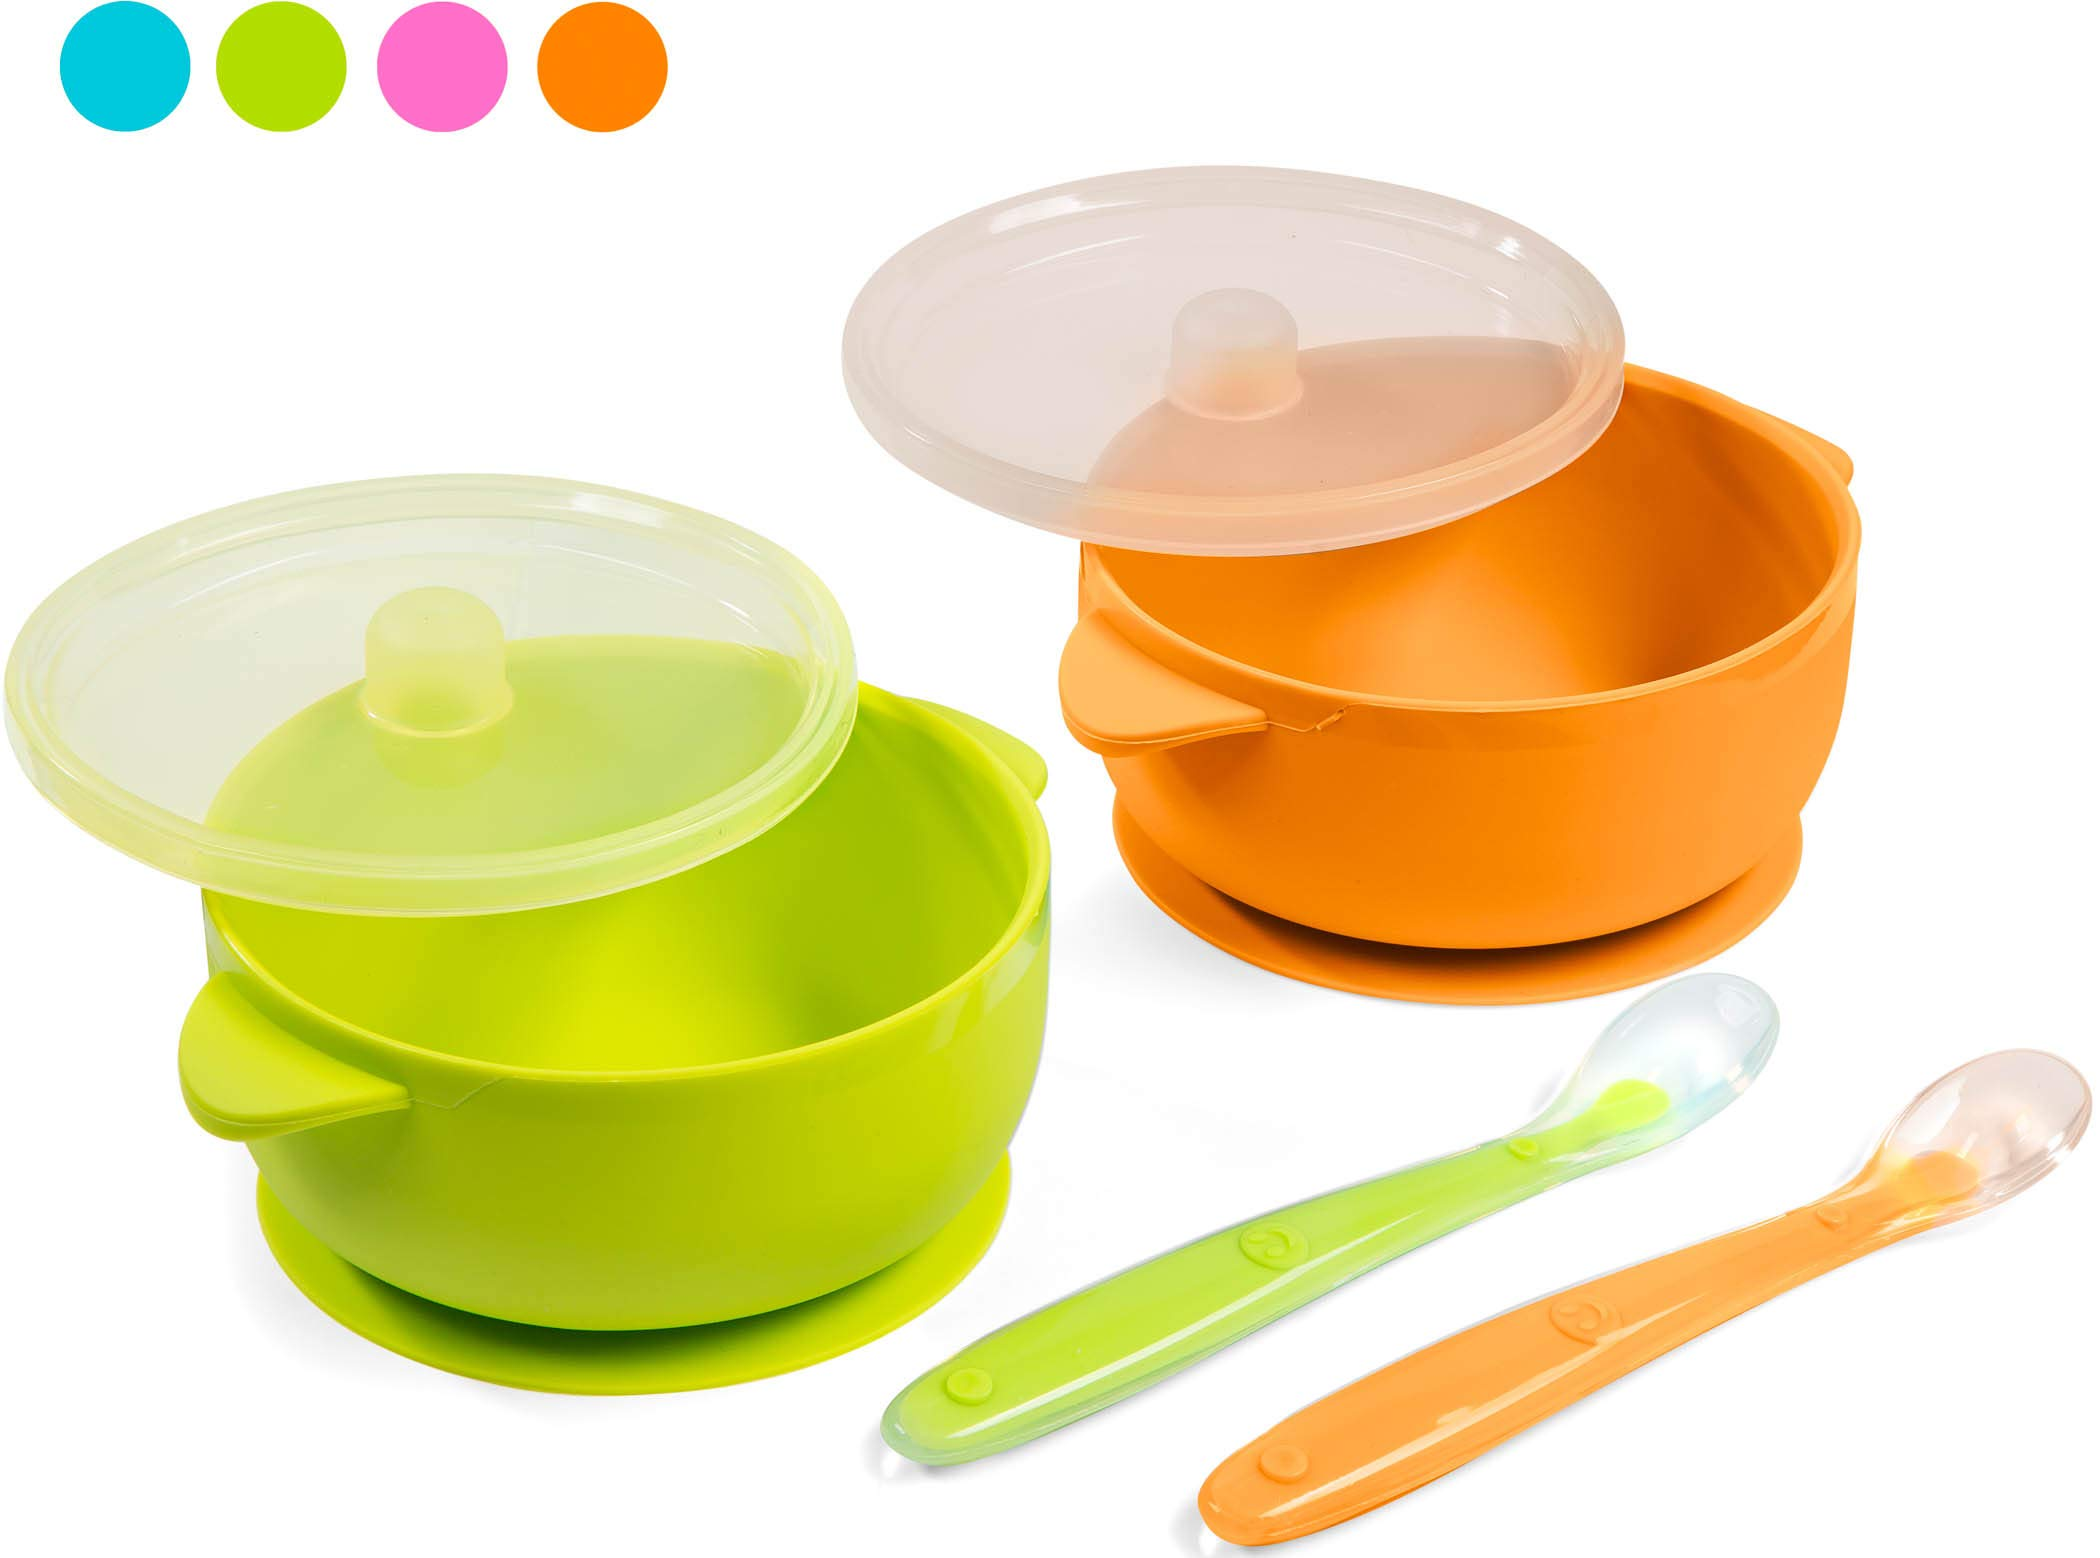 Best Baby Suction Silicone Bowl Set Includes Soft Silicone Spoon + Lid BPA Frwe (Green & Orange Bowl) by Sperric